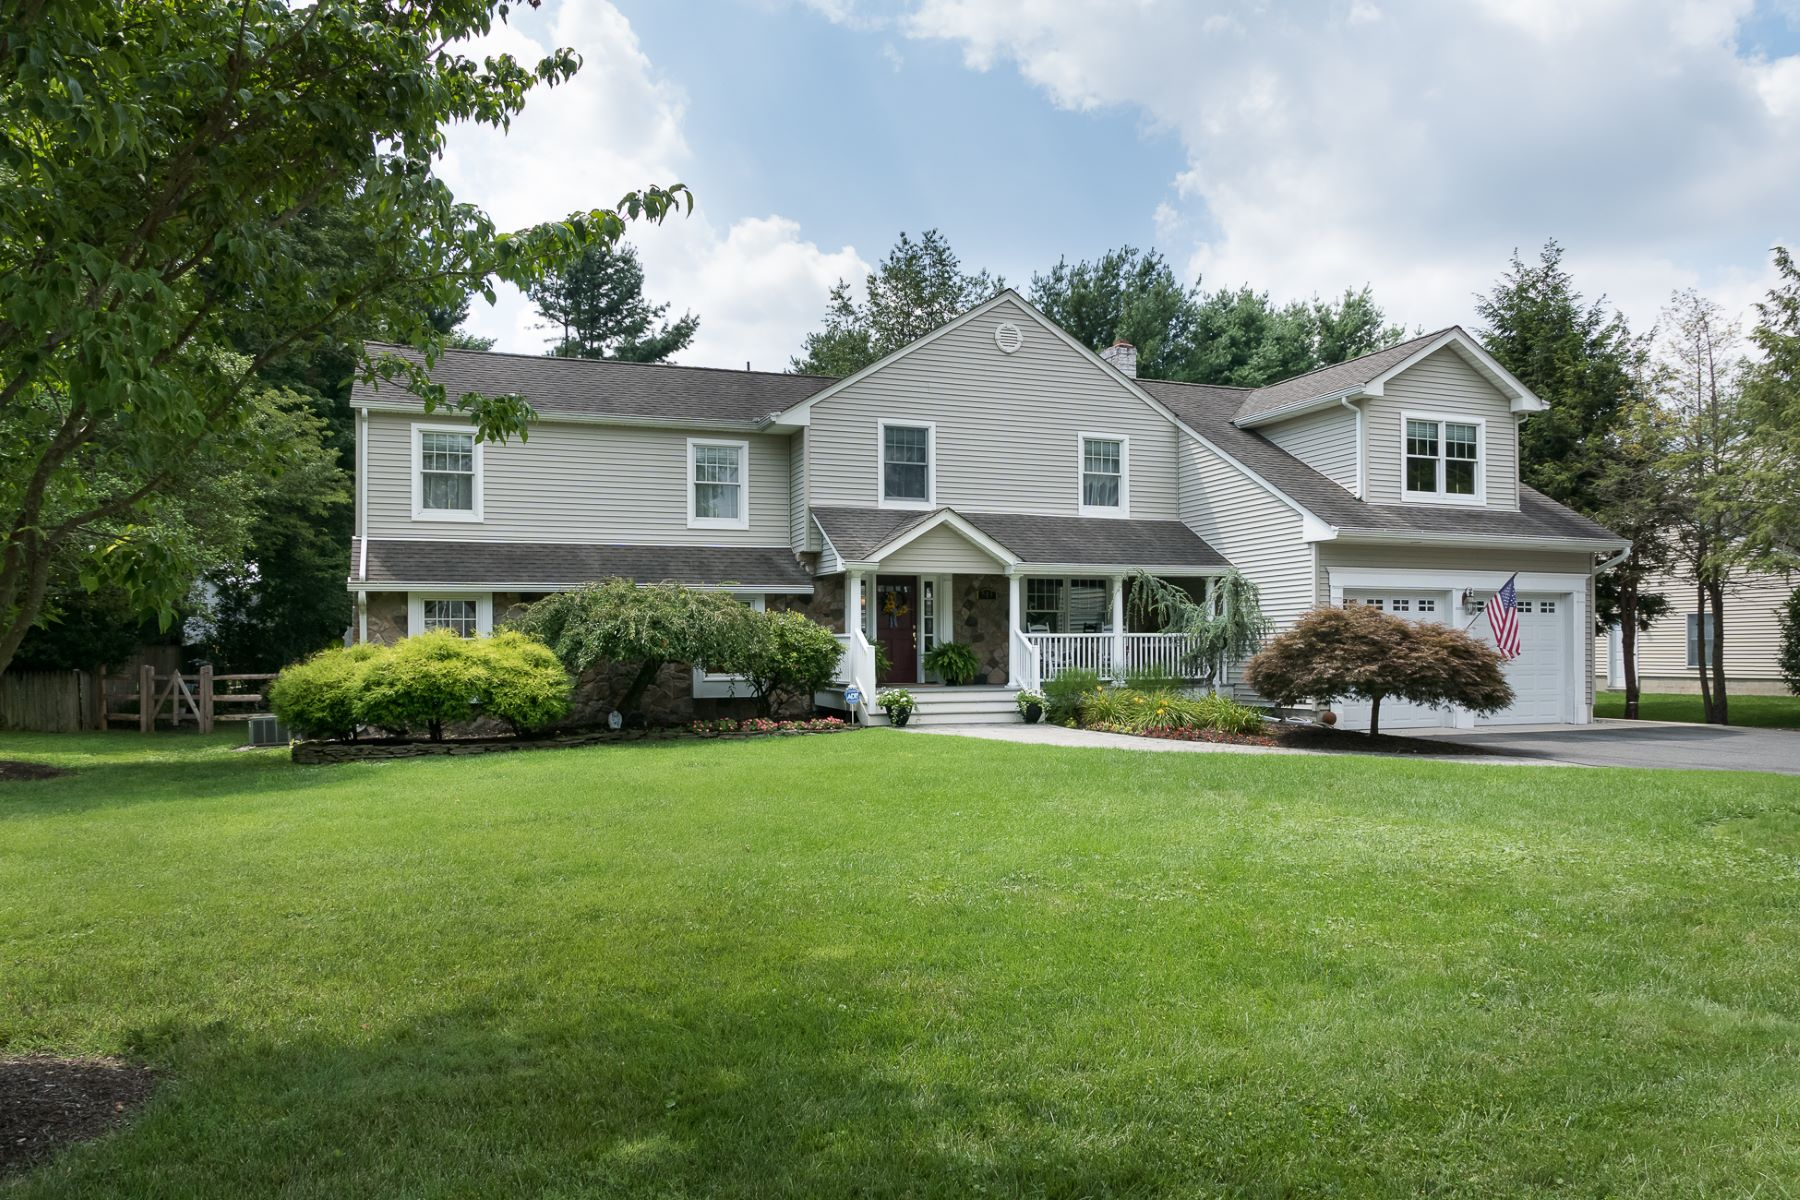 Single Family Homes for Sale at Truly Exceptional Design with a Poolside Oasis 513 Village Road West, Princeton Junction, New Jersey 08550 United States